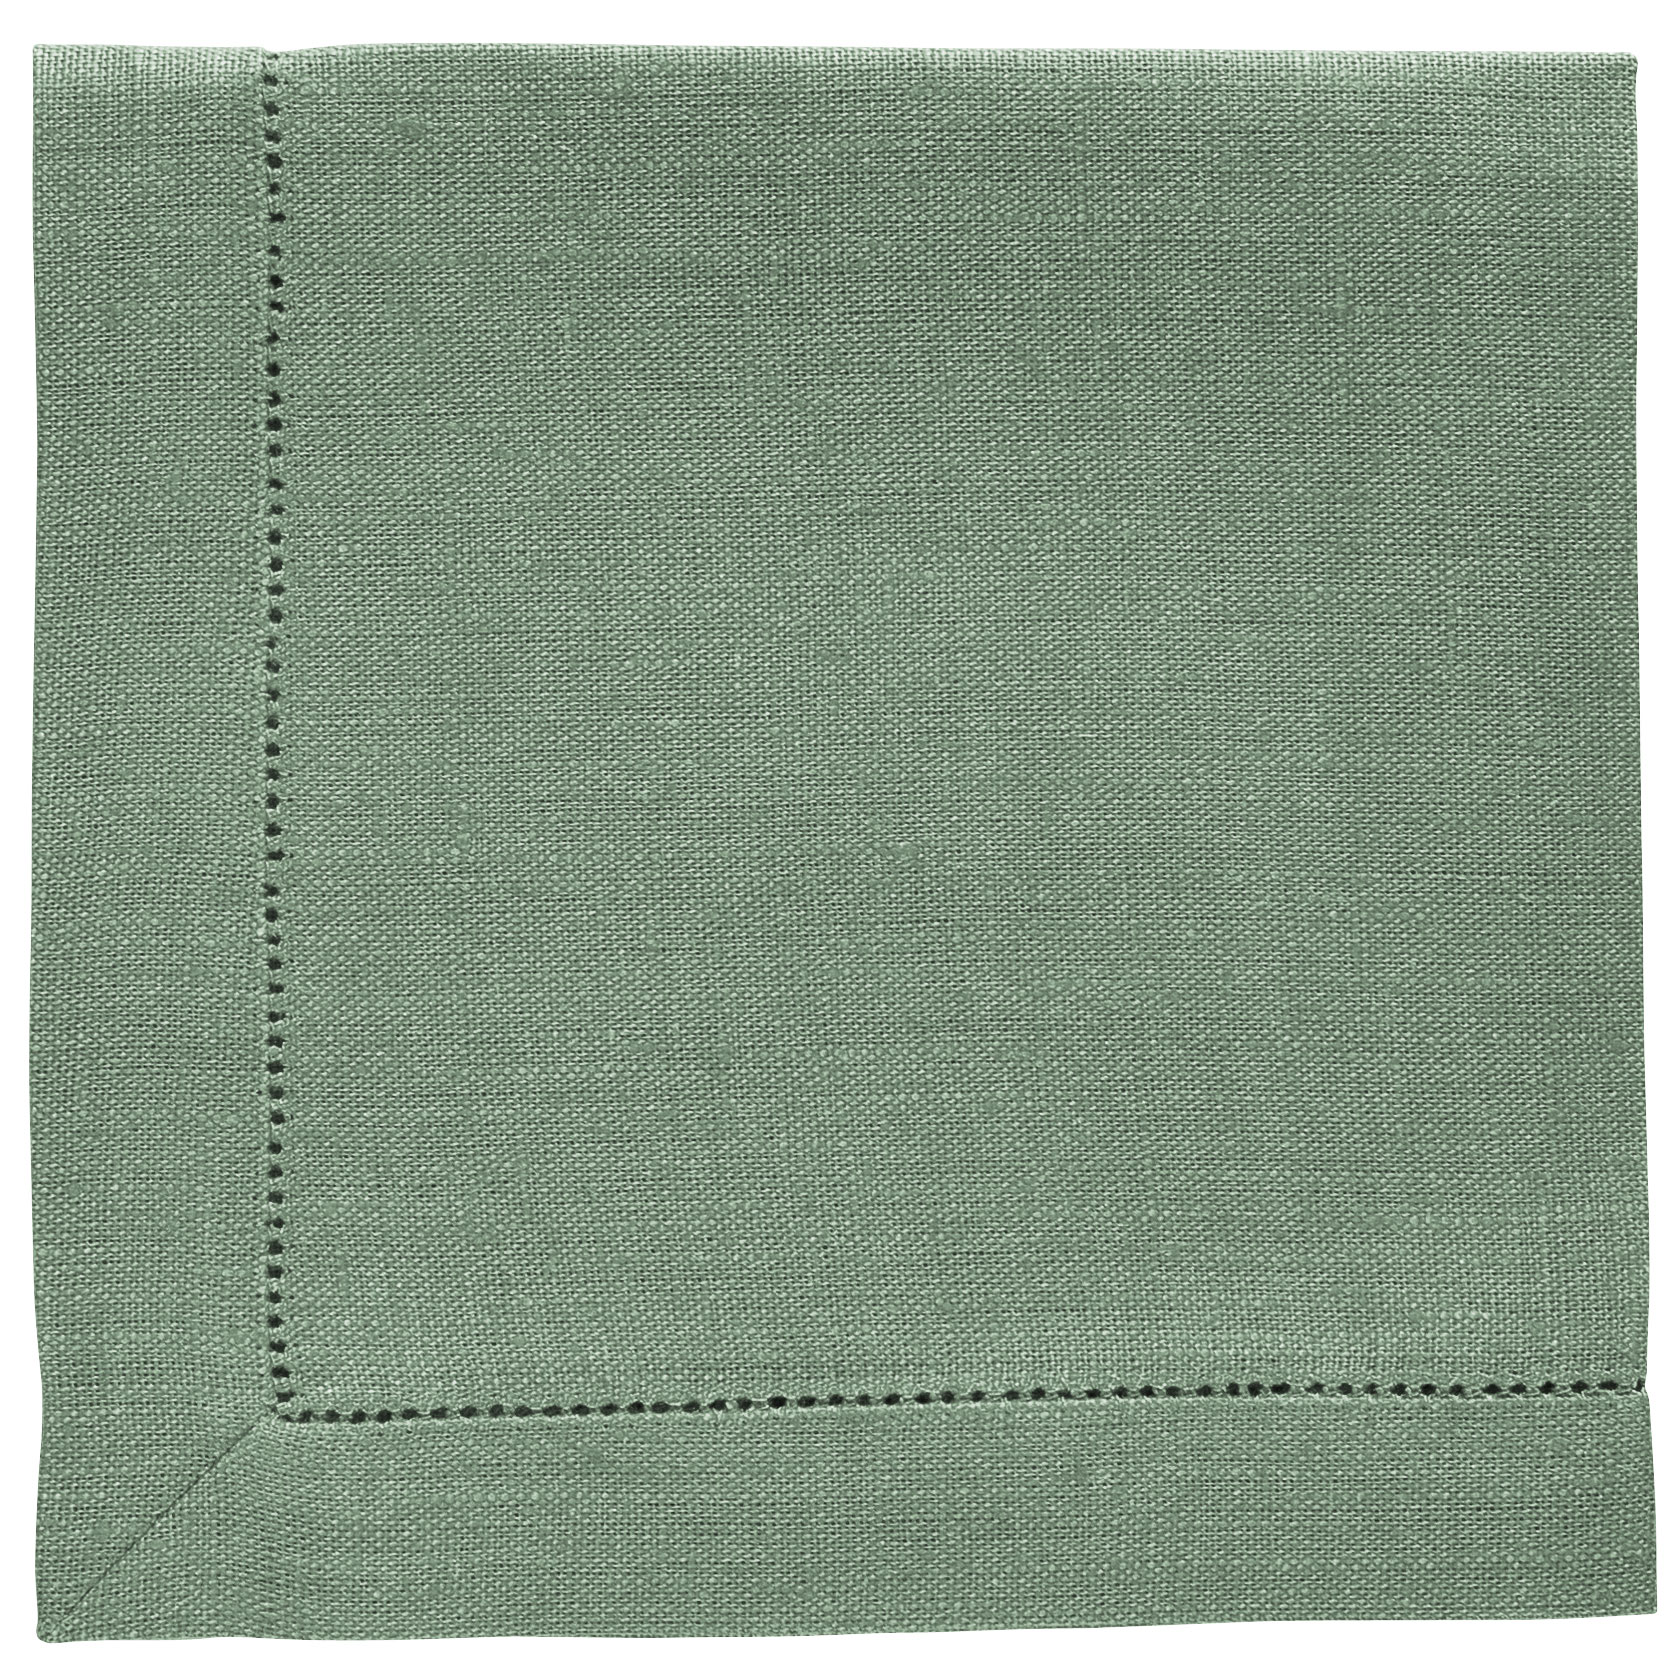 NAPKIN <br />smoke green